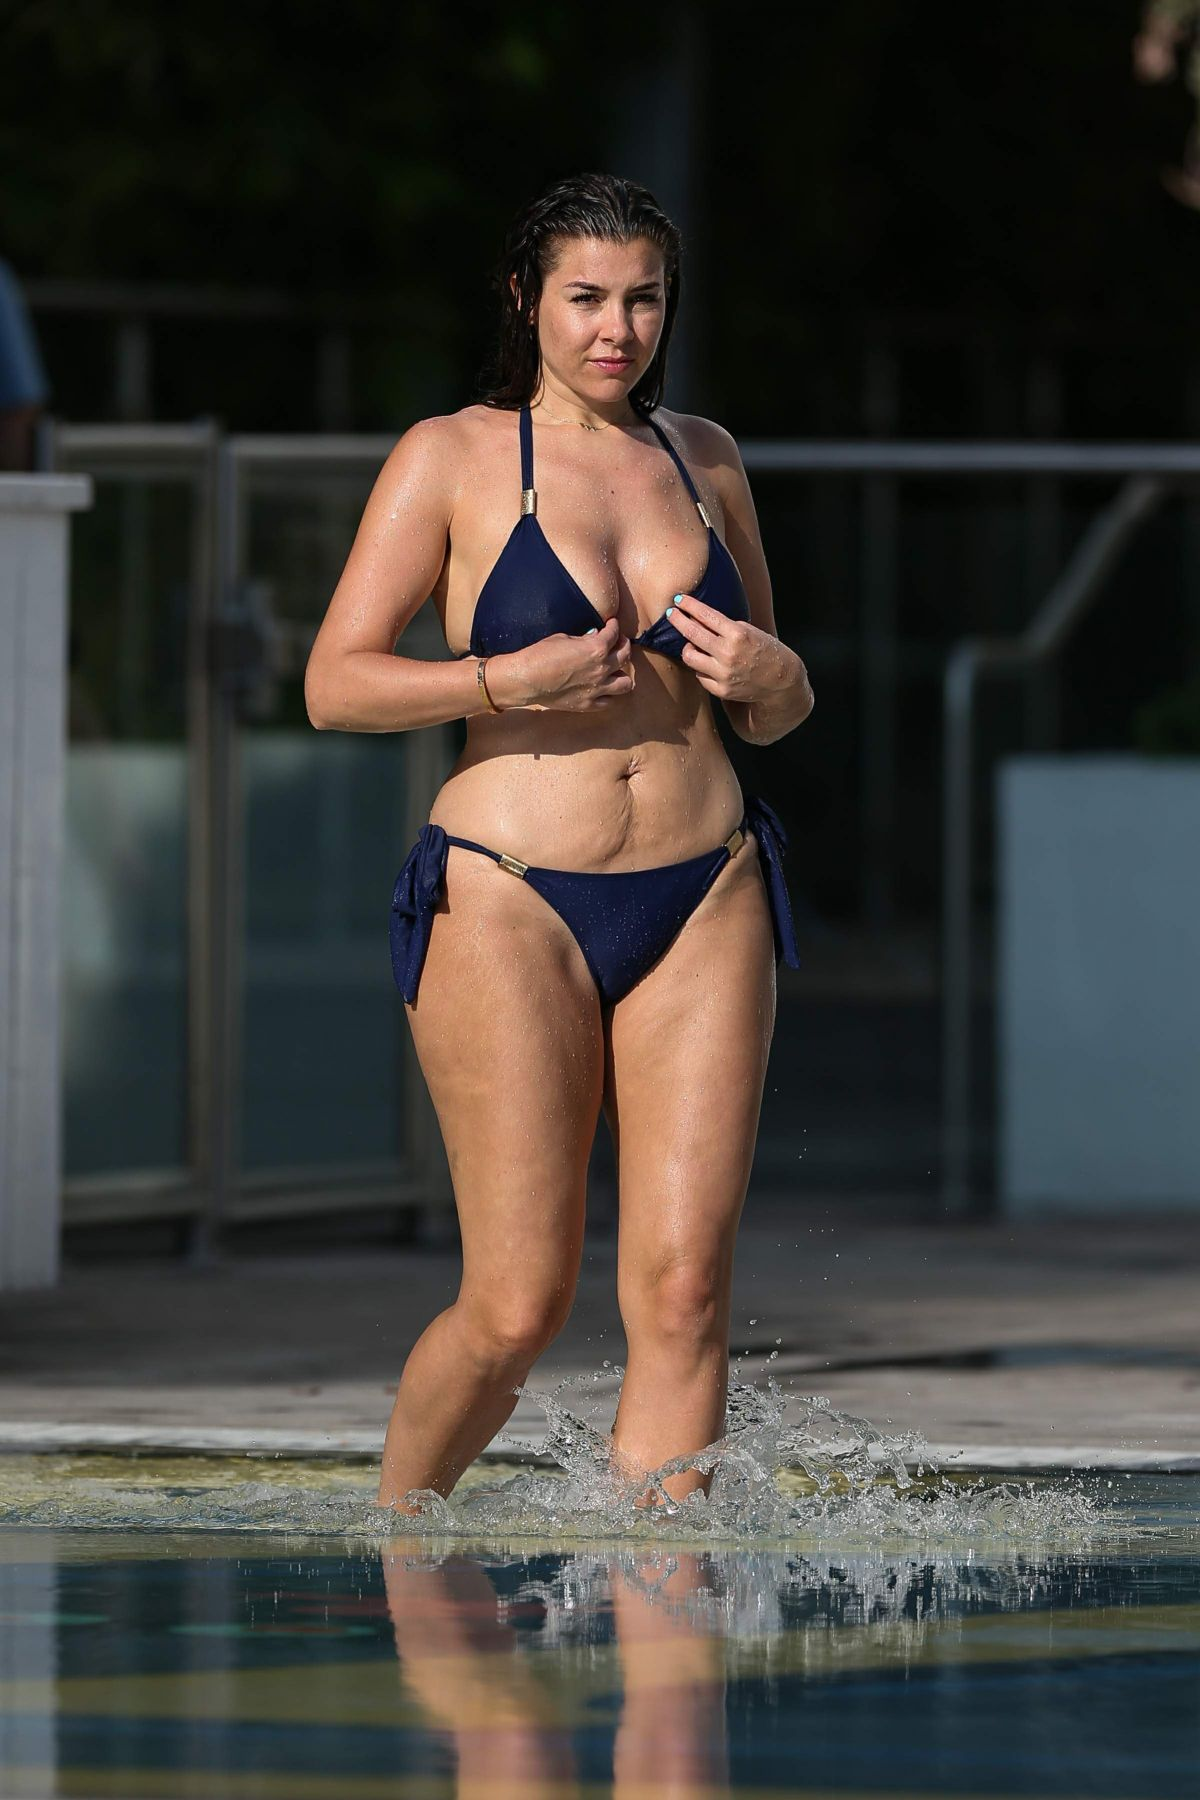 Photos Imogen Thomas nudes (94 foto and video), Tits, Leaked, Twitter, legs 2020